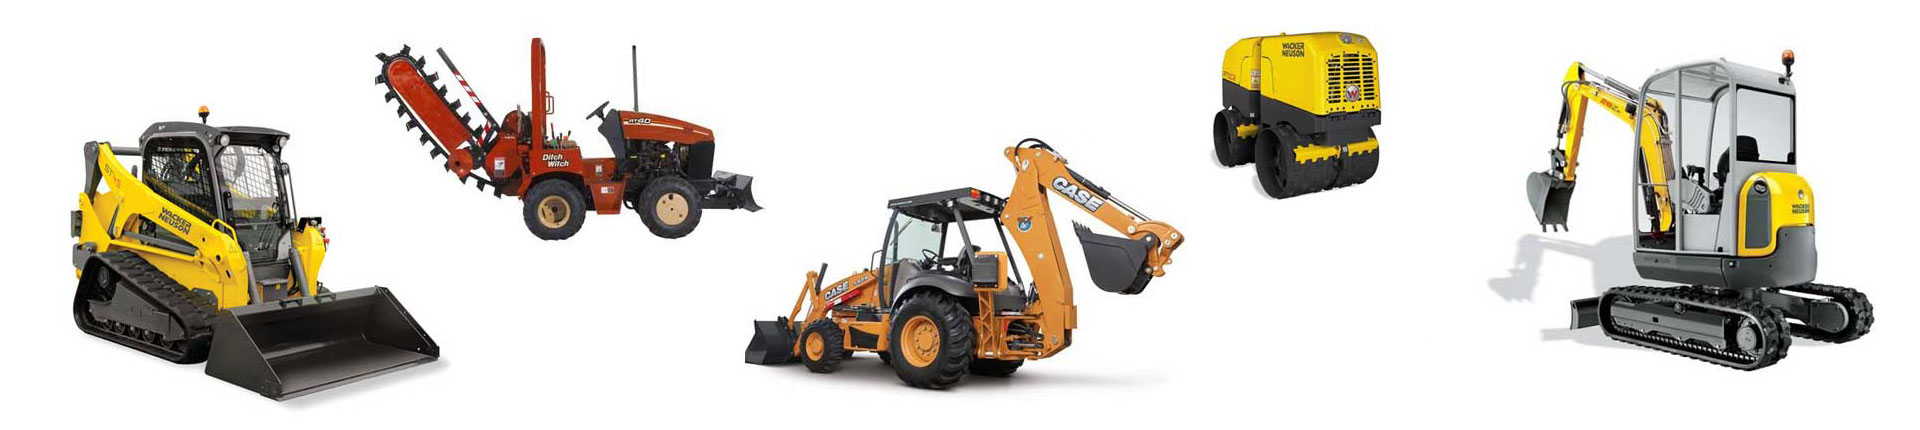 Equipment rentals in Rexburg ID and Idaho Falls ID